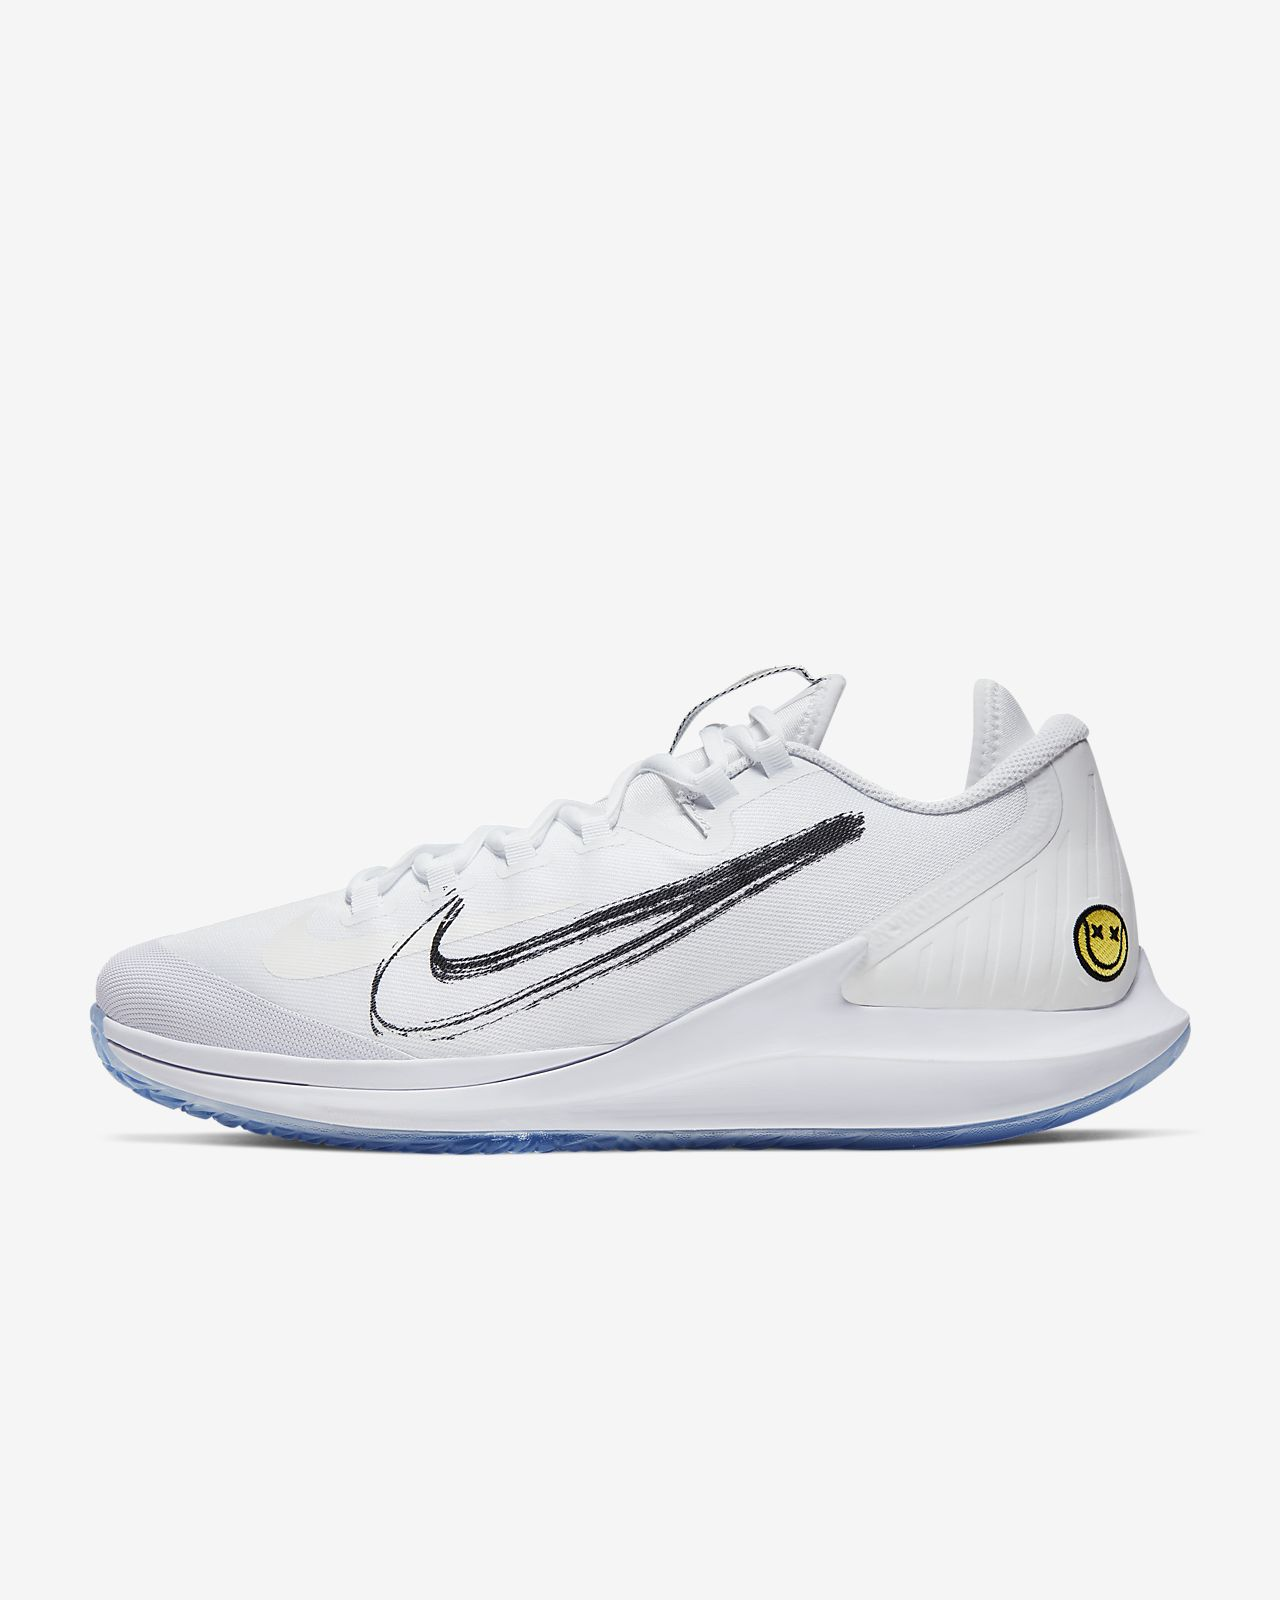 Męskie buty do tenisa NikeCourt Air Zoom Zero